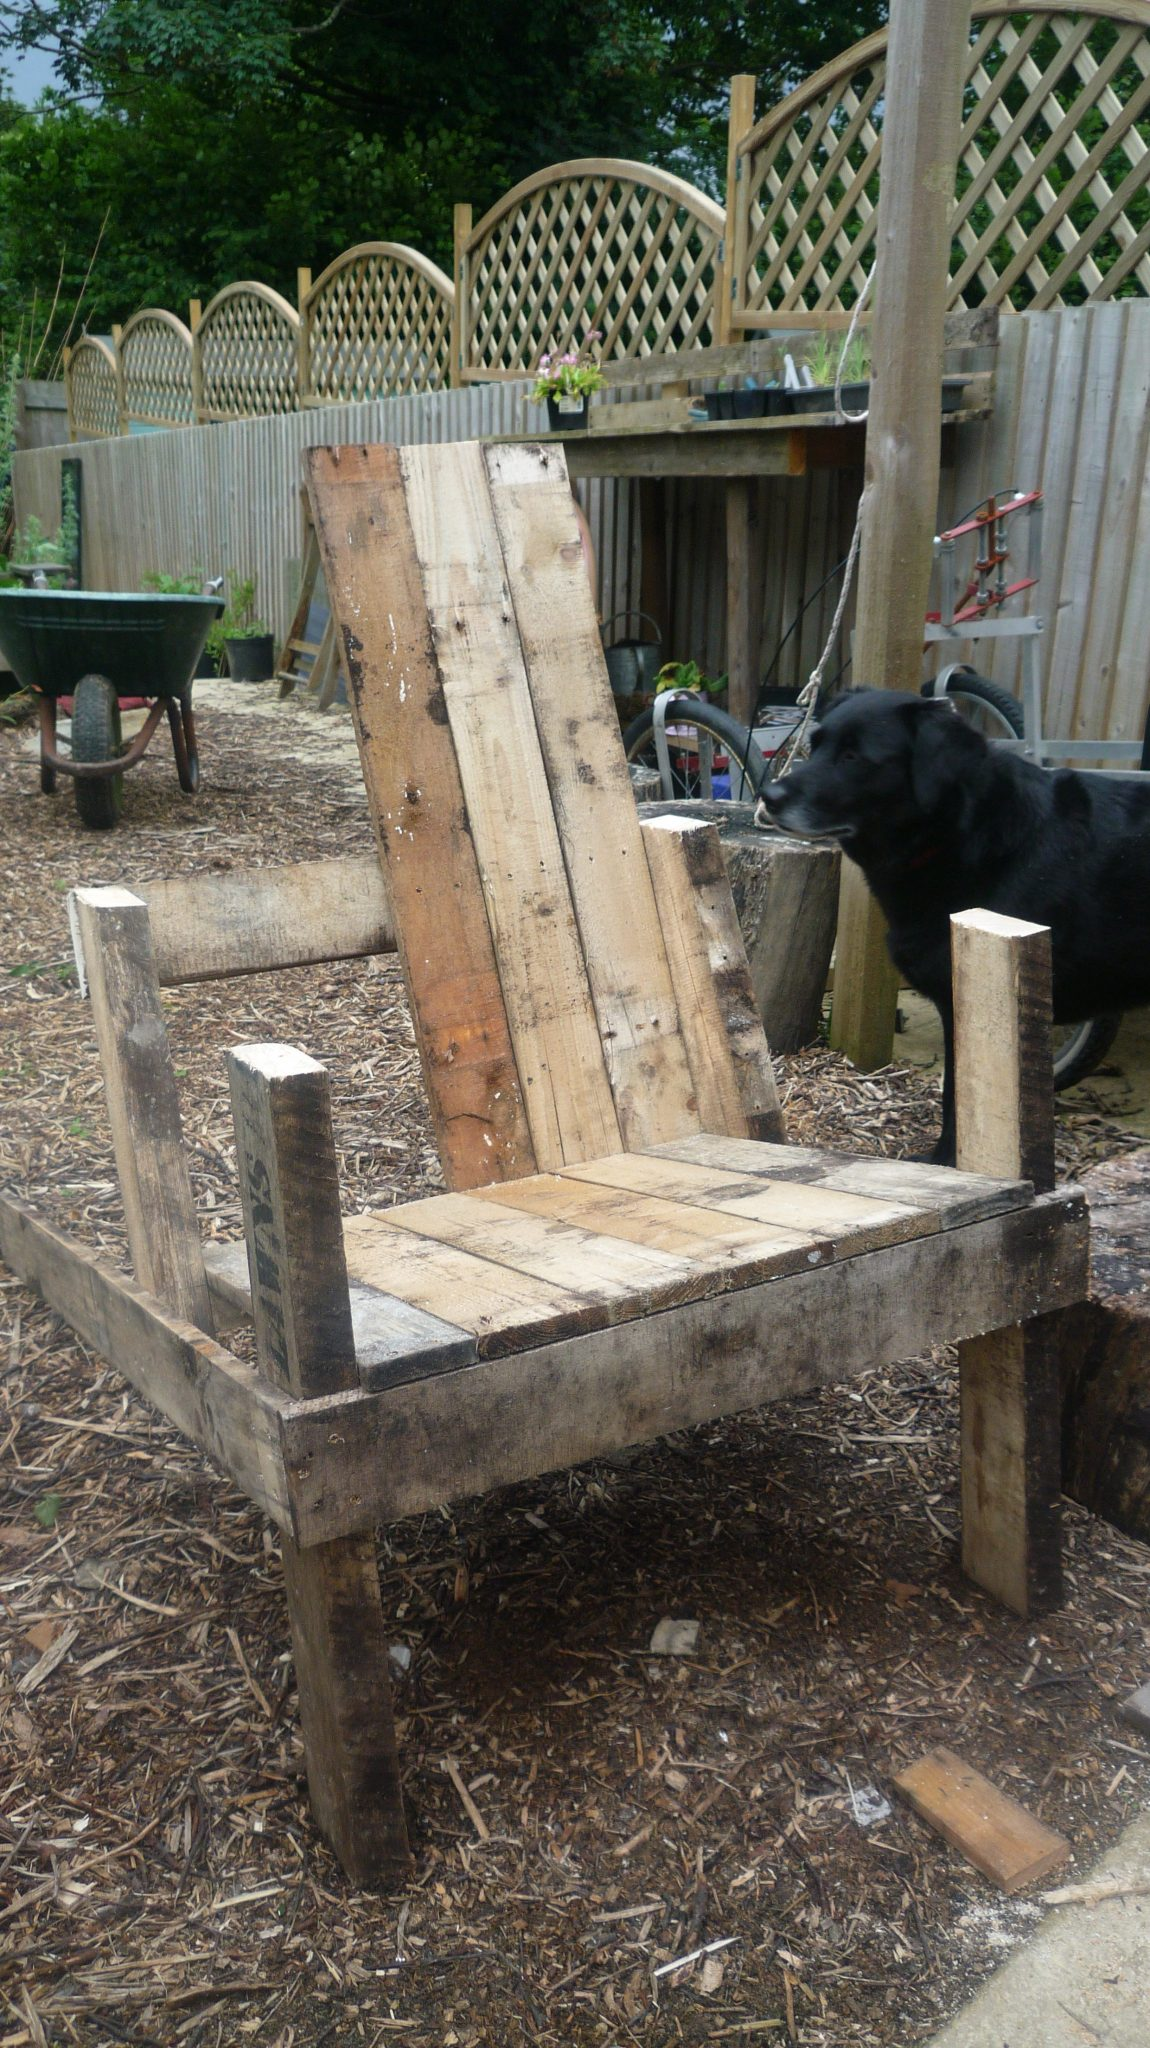 A chair in the making